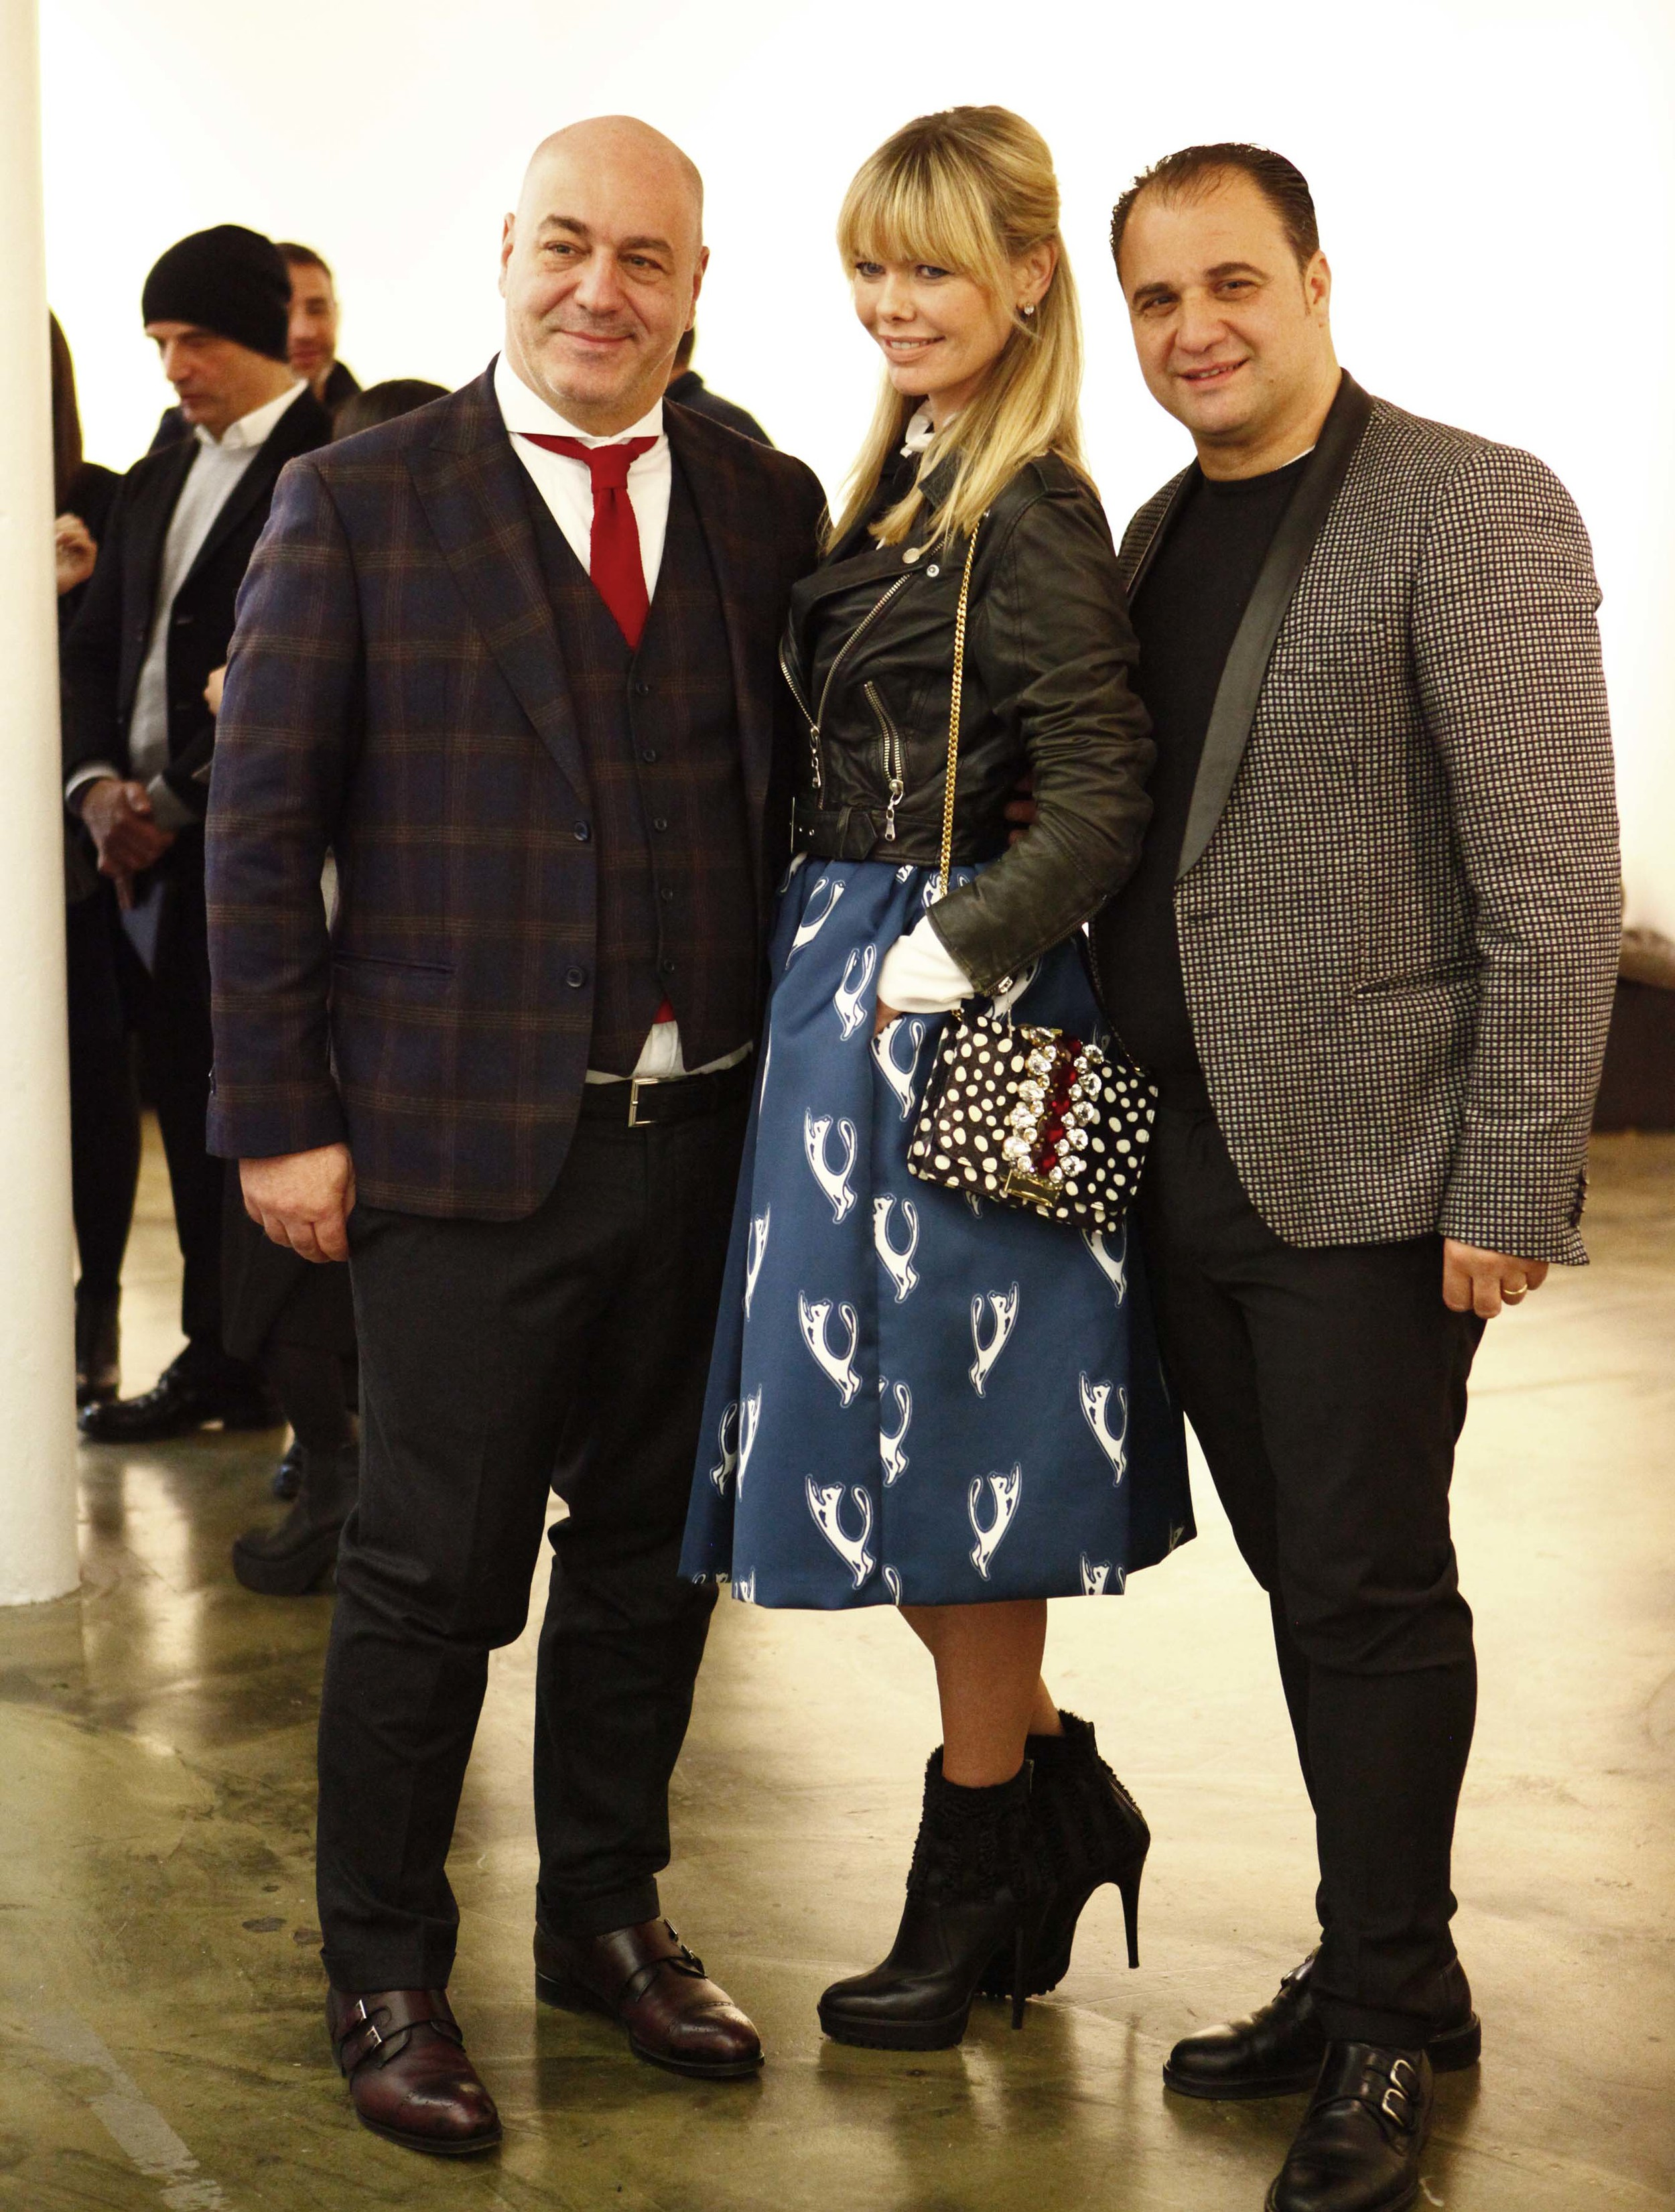 Here together with Salvatore Toma and Sergio Toma, owners ofVe.An Fashion.